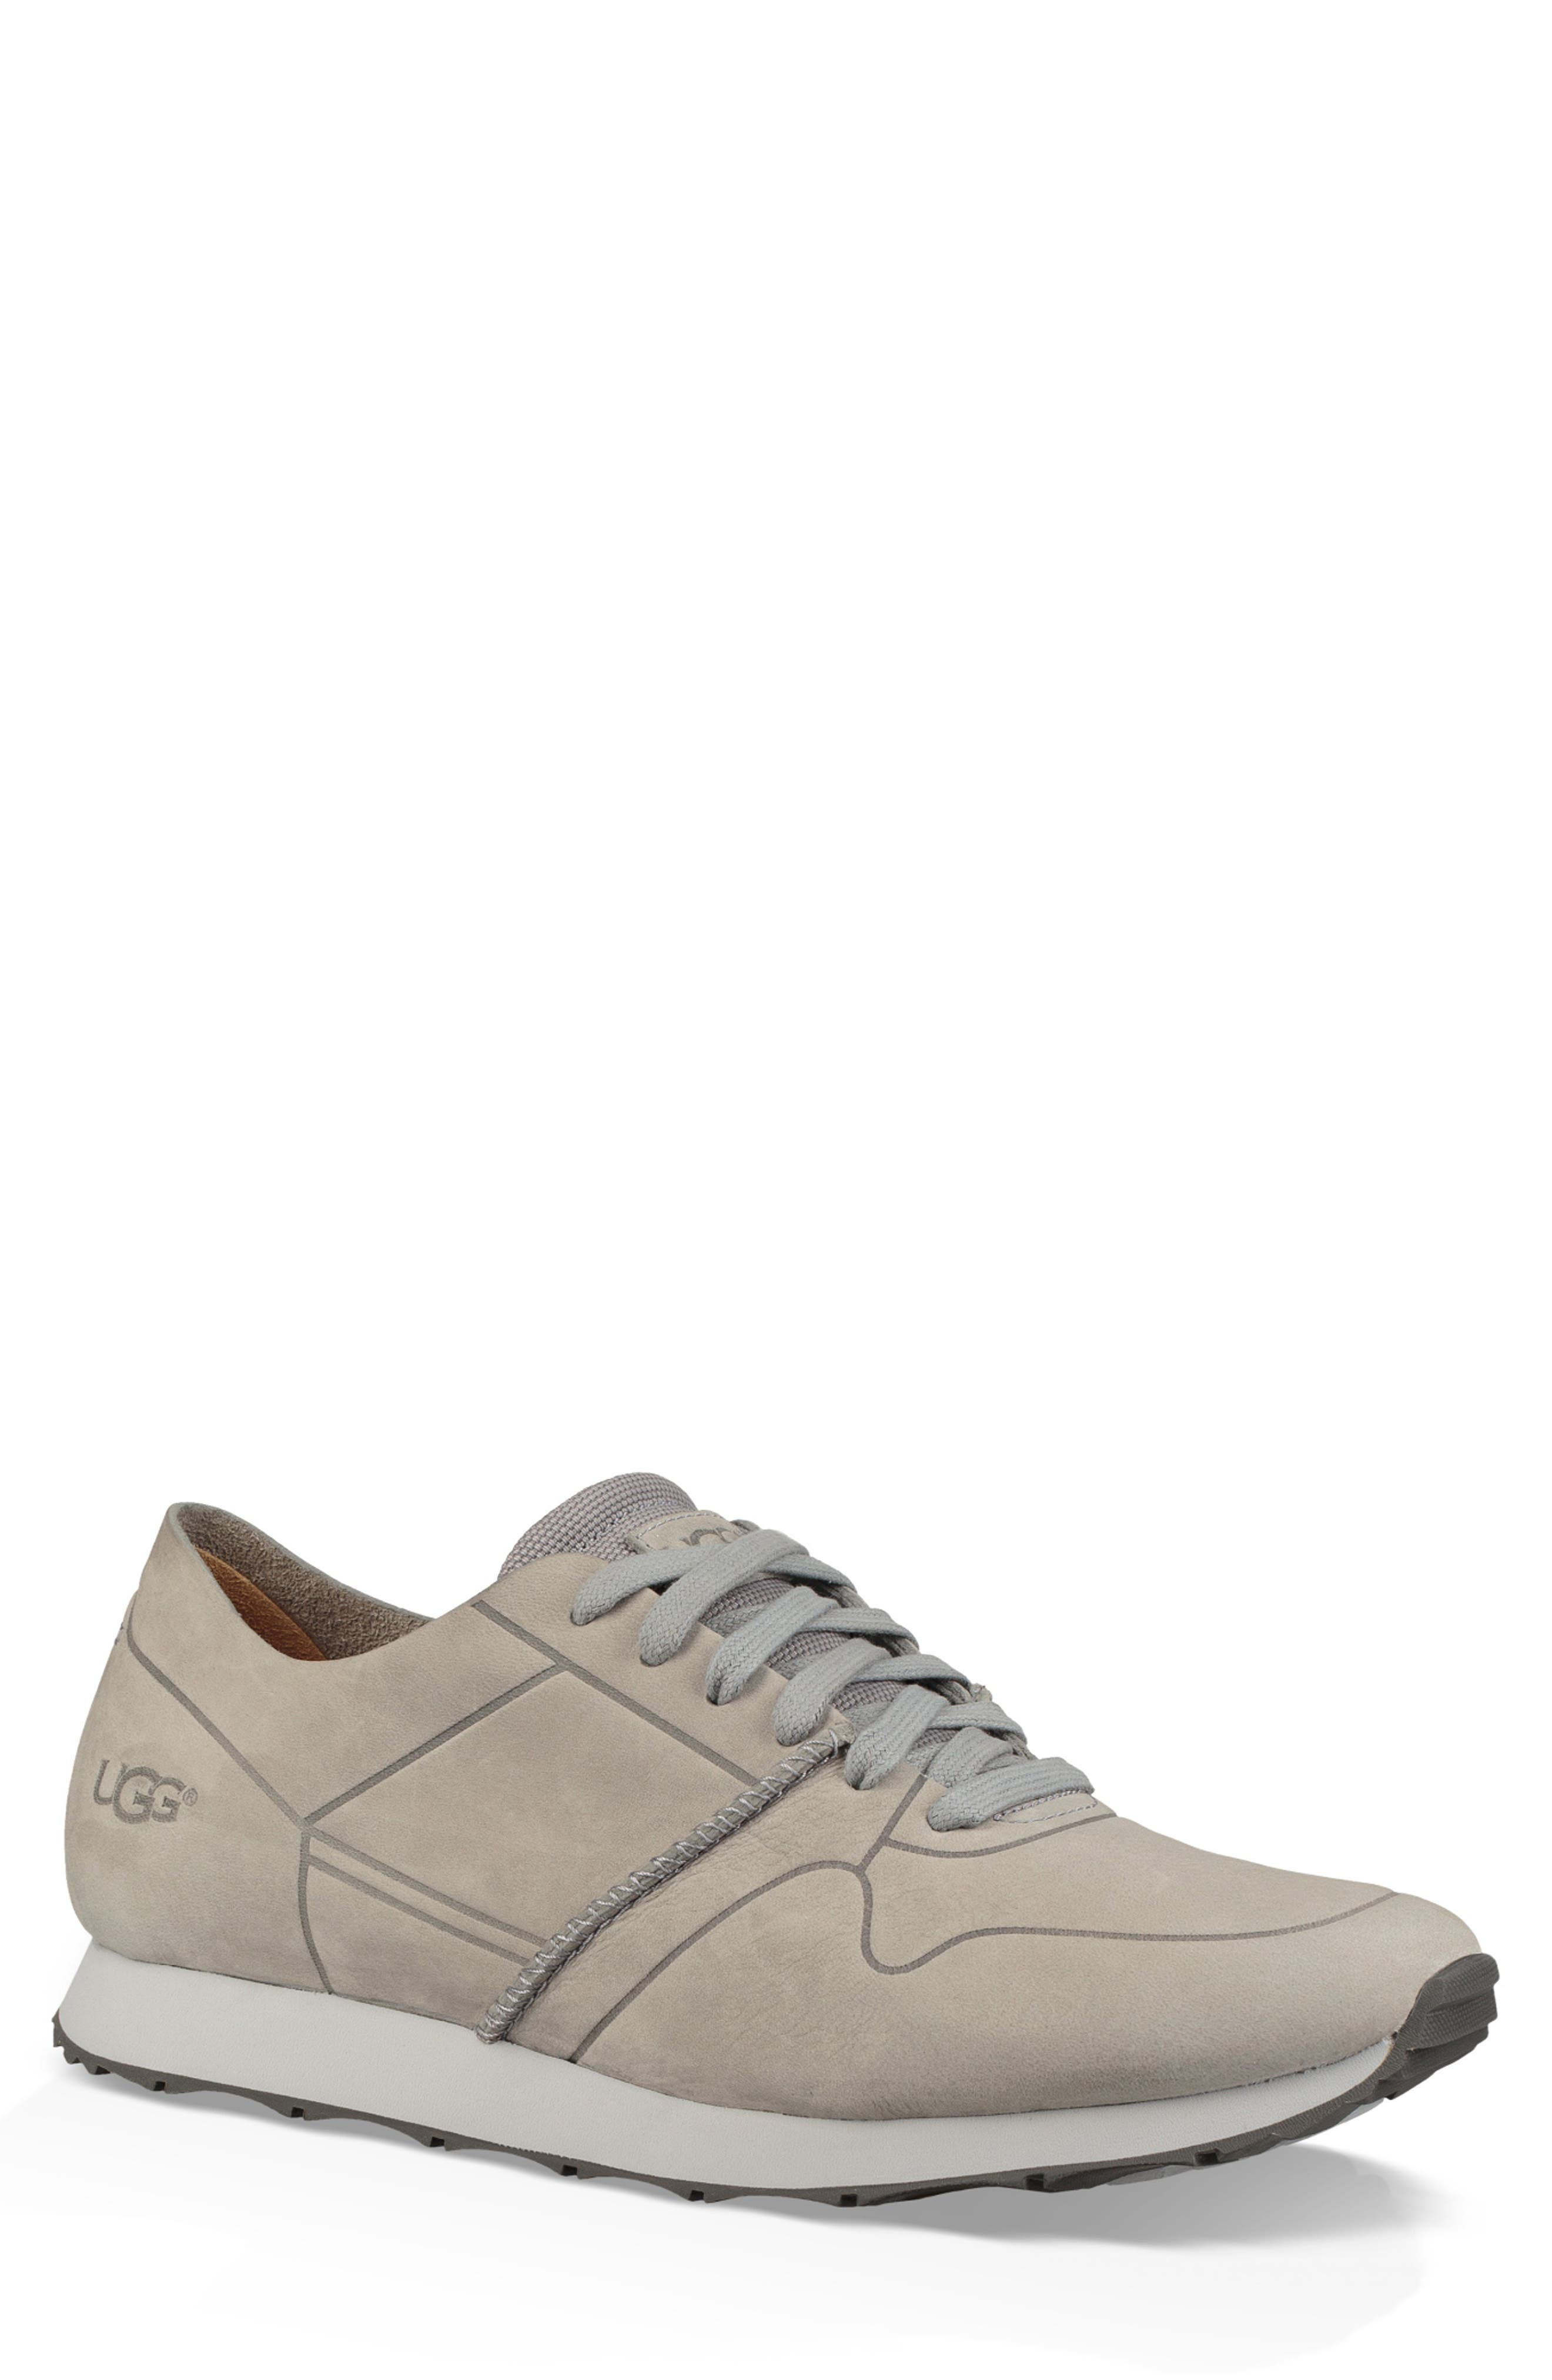 Trigo Unlined Sneaker,                         Main,                         color, 024